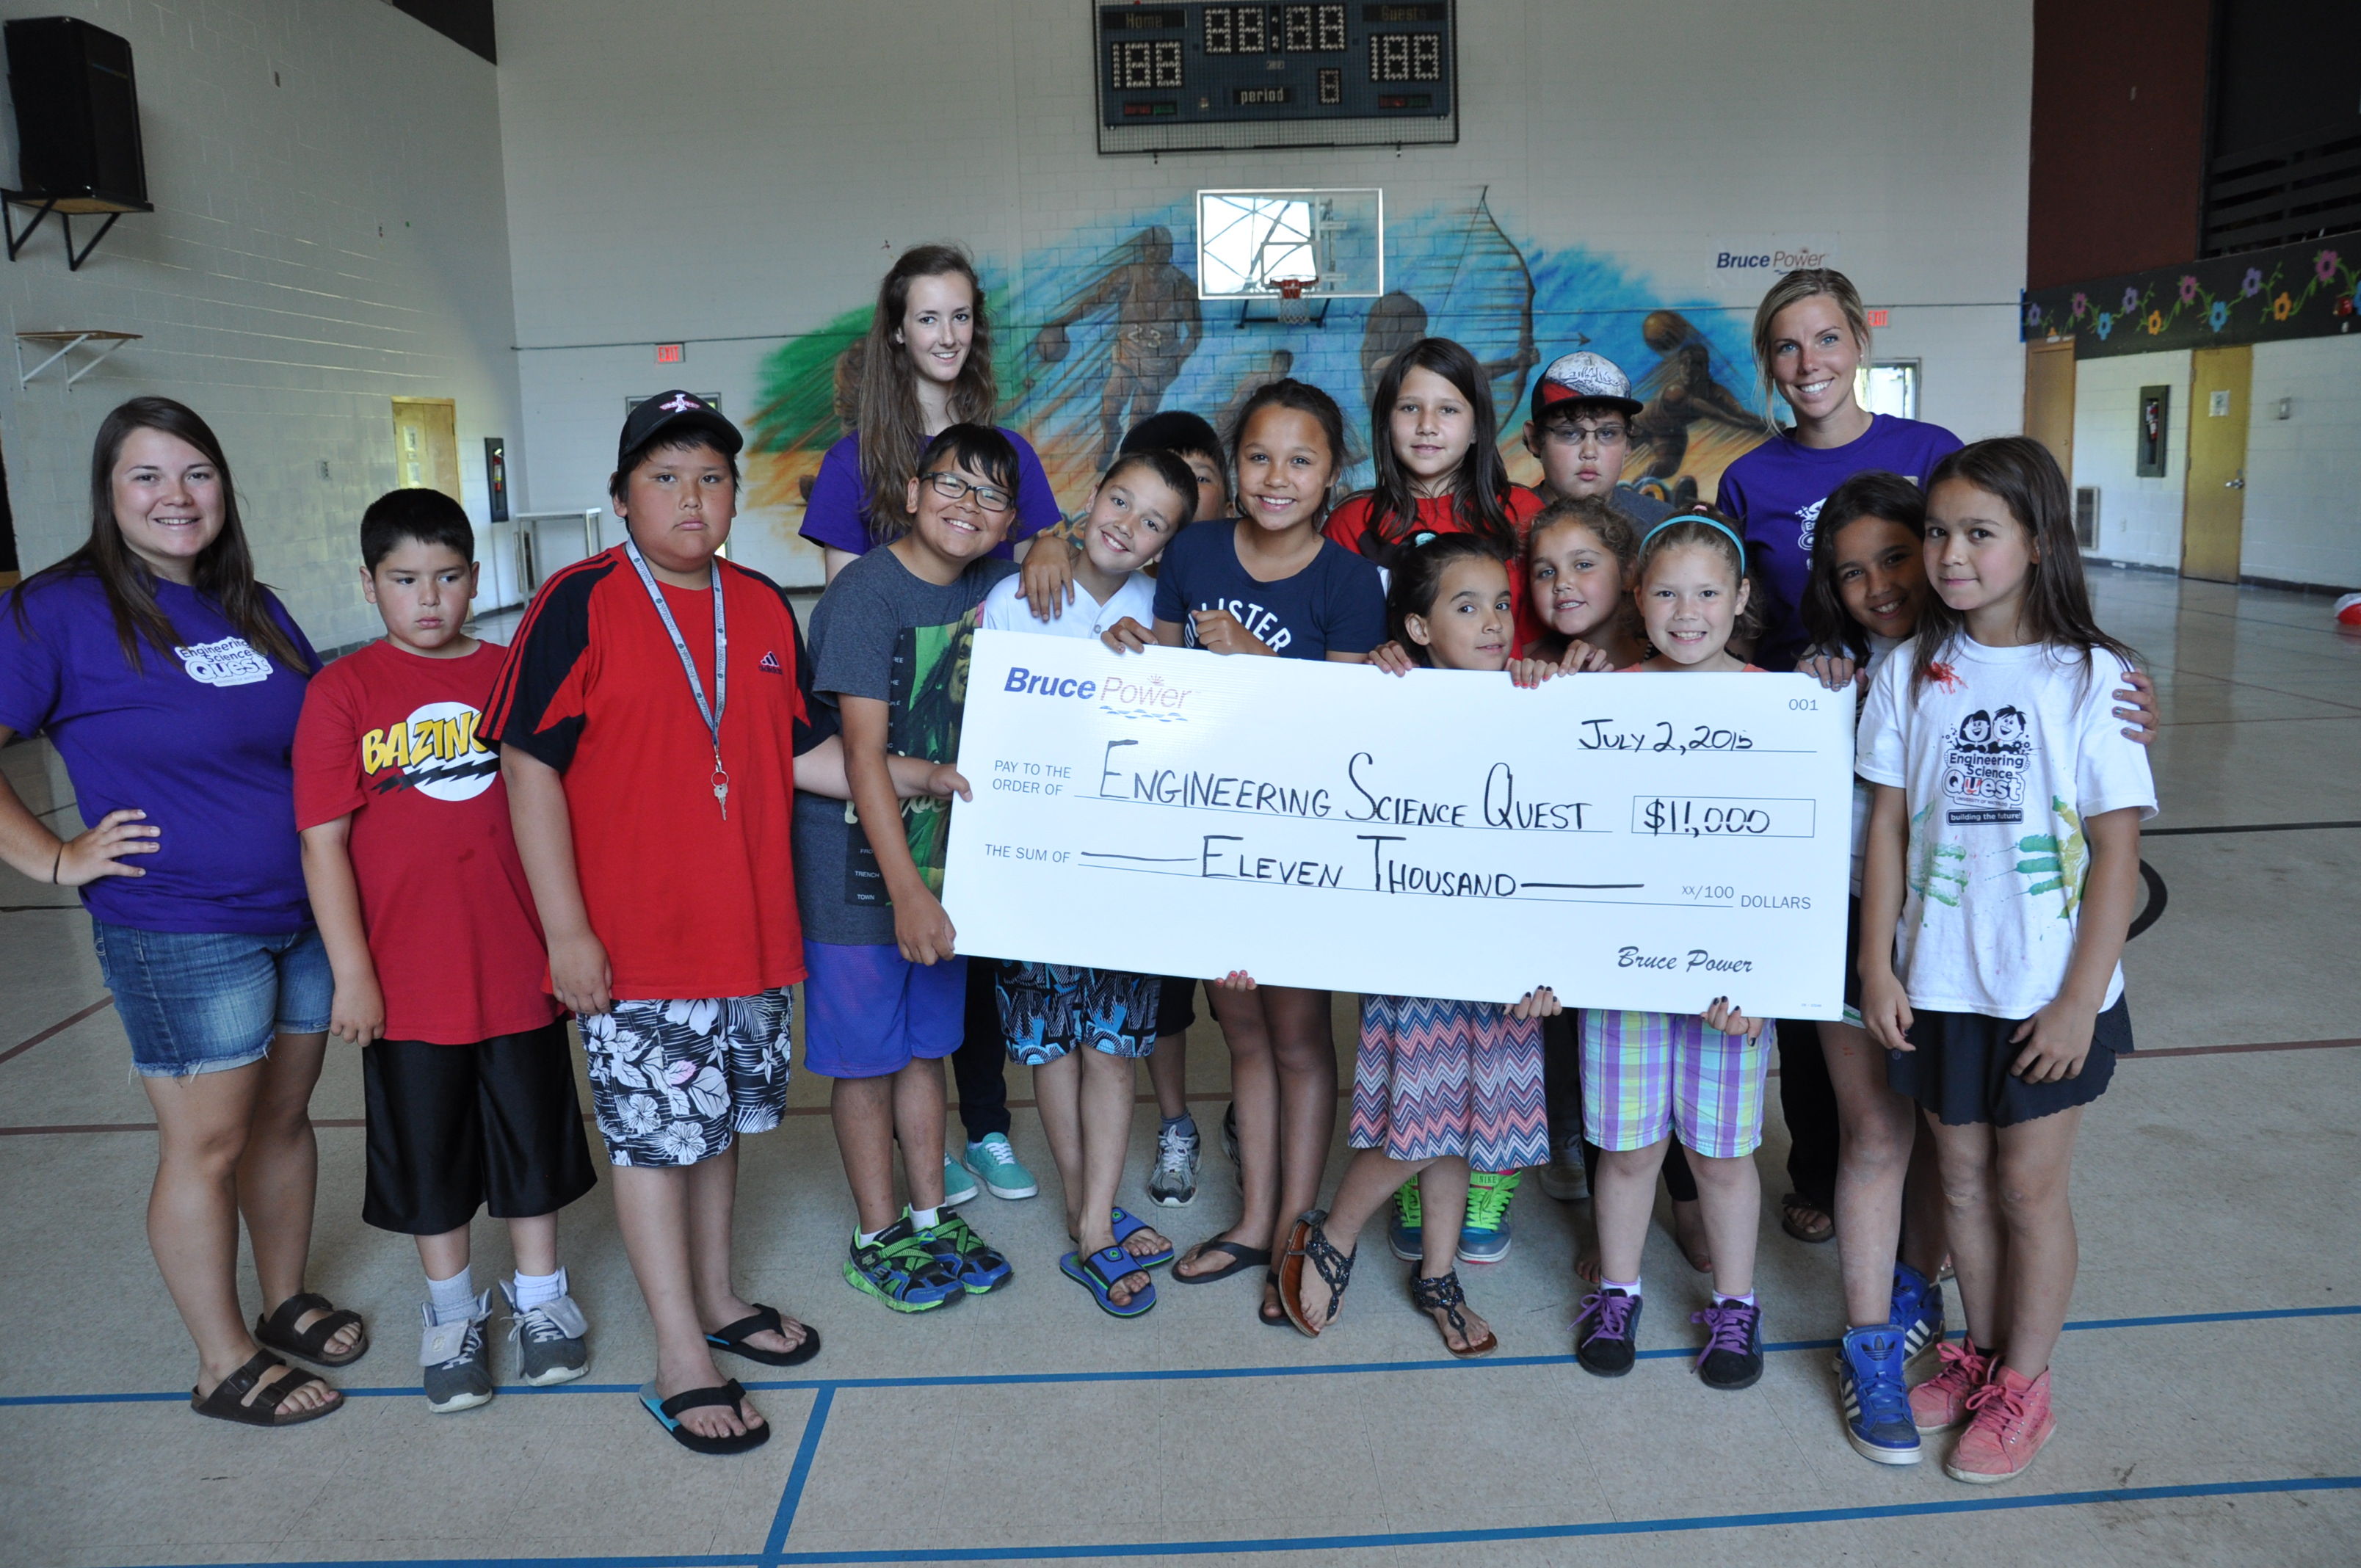 Bruce Power donates over $1.3 million annually through its Community Investment and Sponsorship Program